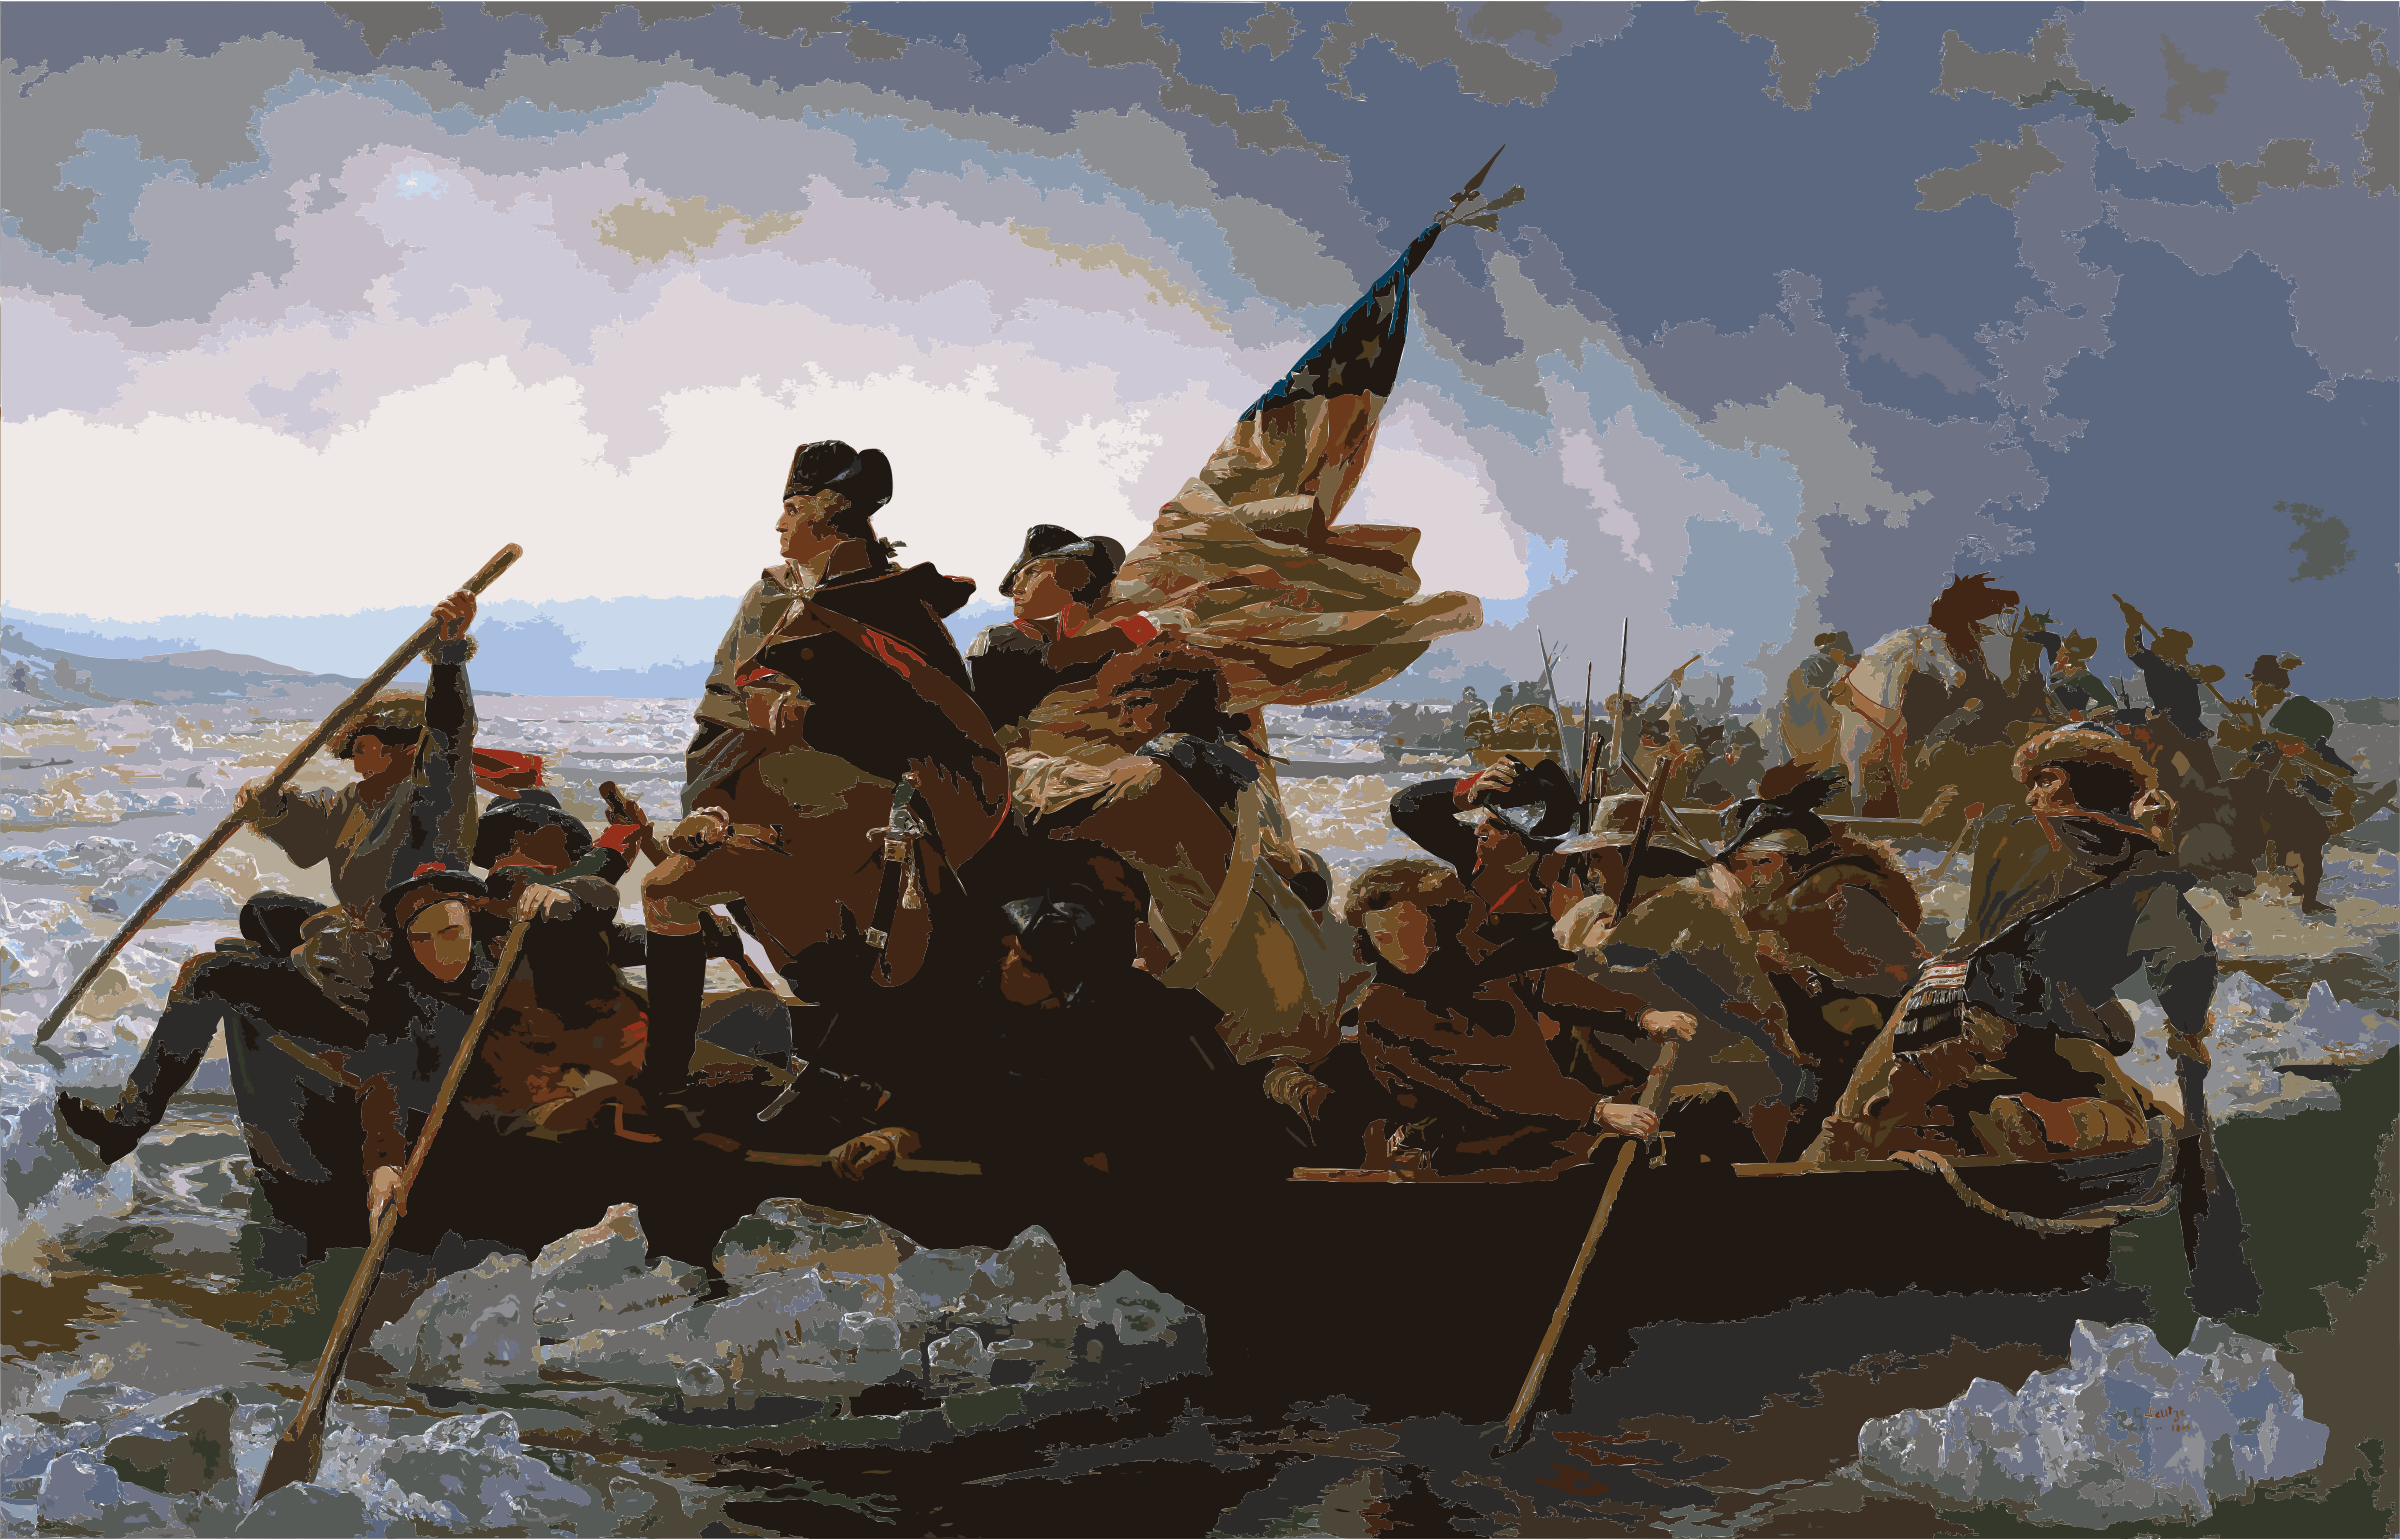 Washington Crossing the Delaware by Emanuel Leutze, MMA-NYC, 1851 by 5n9sst+earkddiows40g